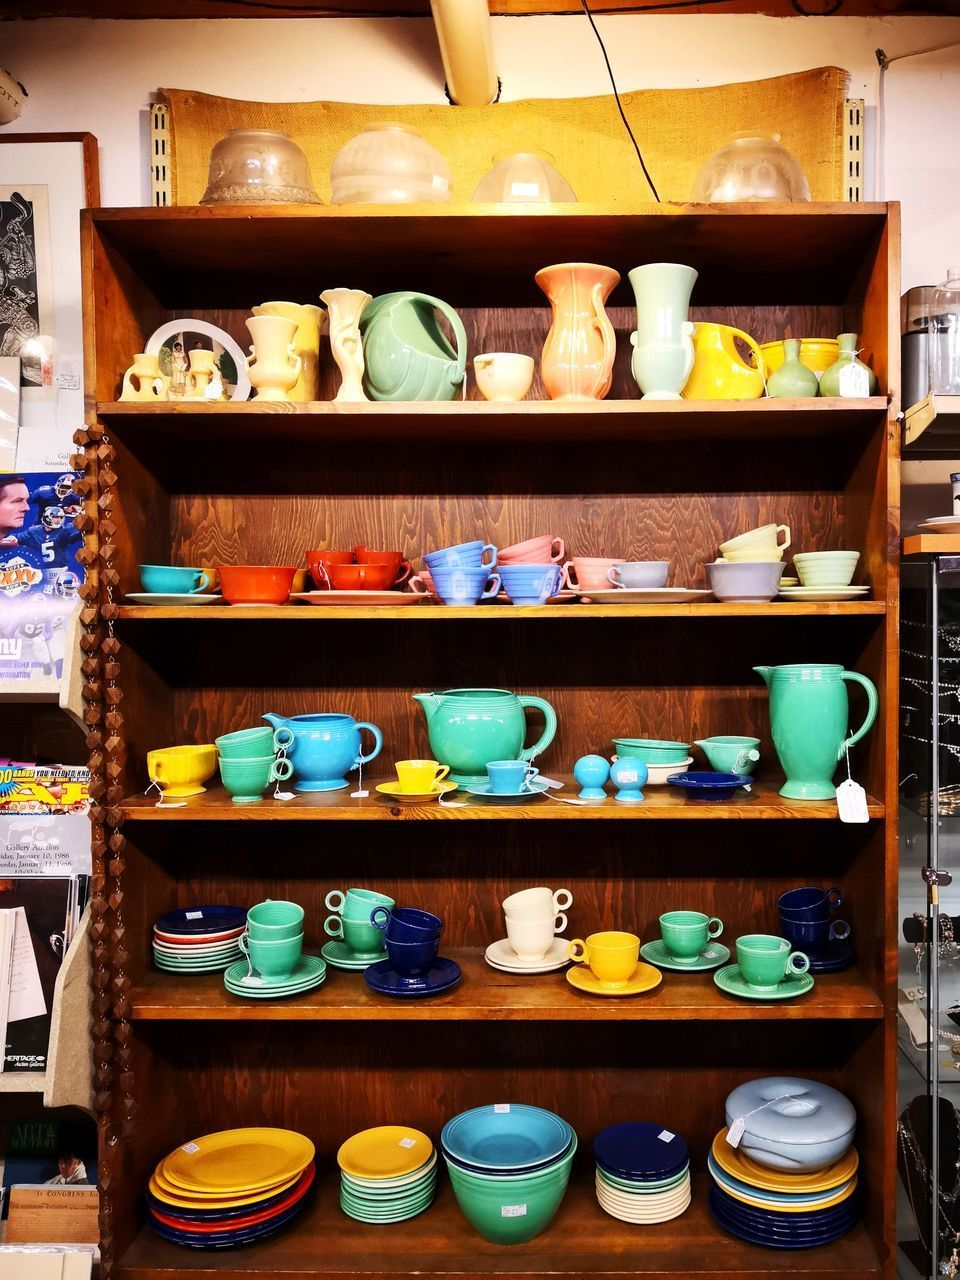 shelf, large group of objects, choice, variation, arrangement, for sale, container, no people, order, abundance, retail, indoors, still life, shelves, rack, shopping, side by side, in a row, kitchen utensil, collection, crockery, cabinet